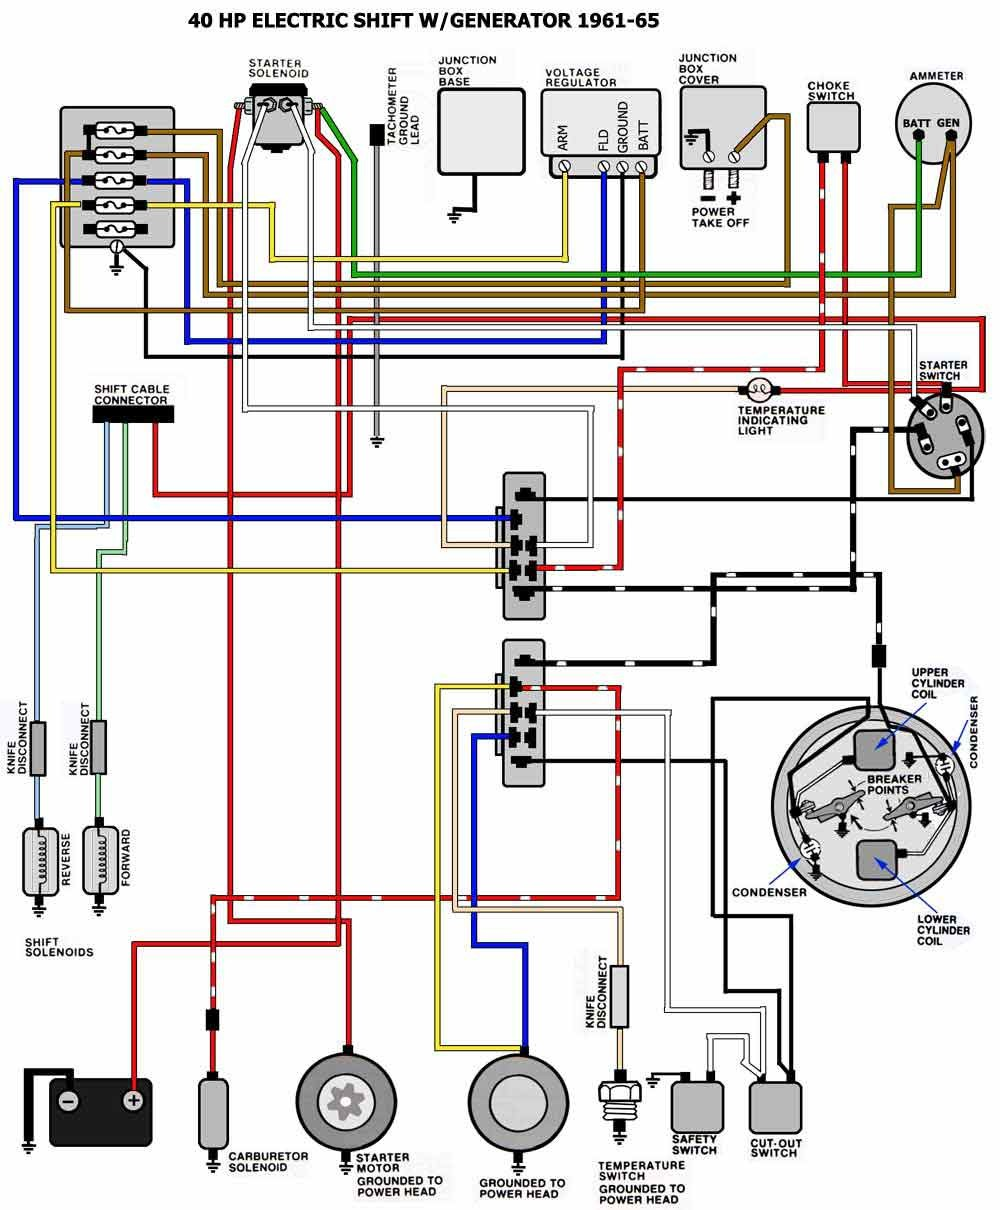 1992 Bmw 325i Wiring Diagram Product Diagrams 1994 Fuel Pump Force 40 Hp 1995 Best Site Harness Gold 2001 Relay Location